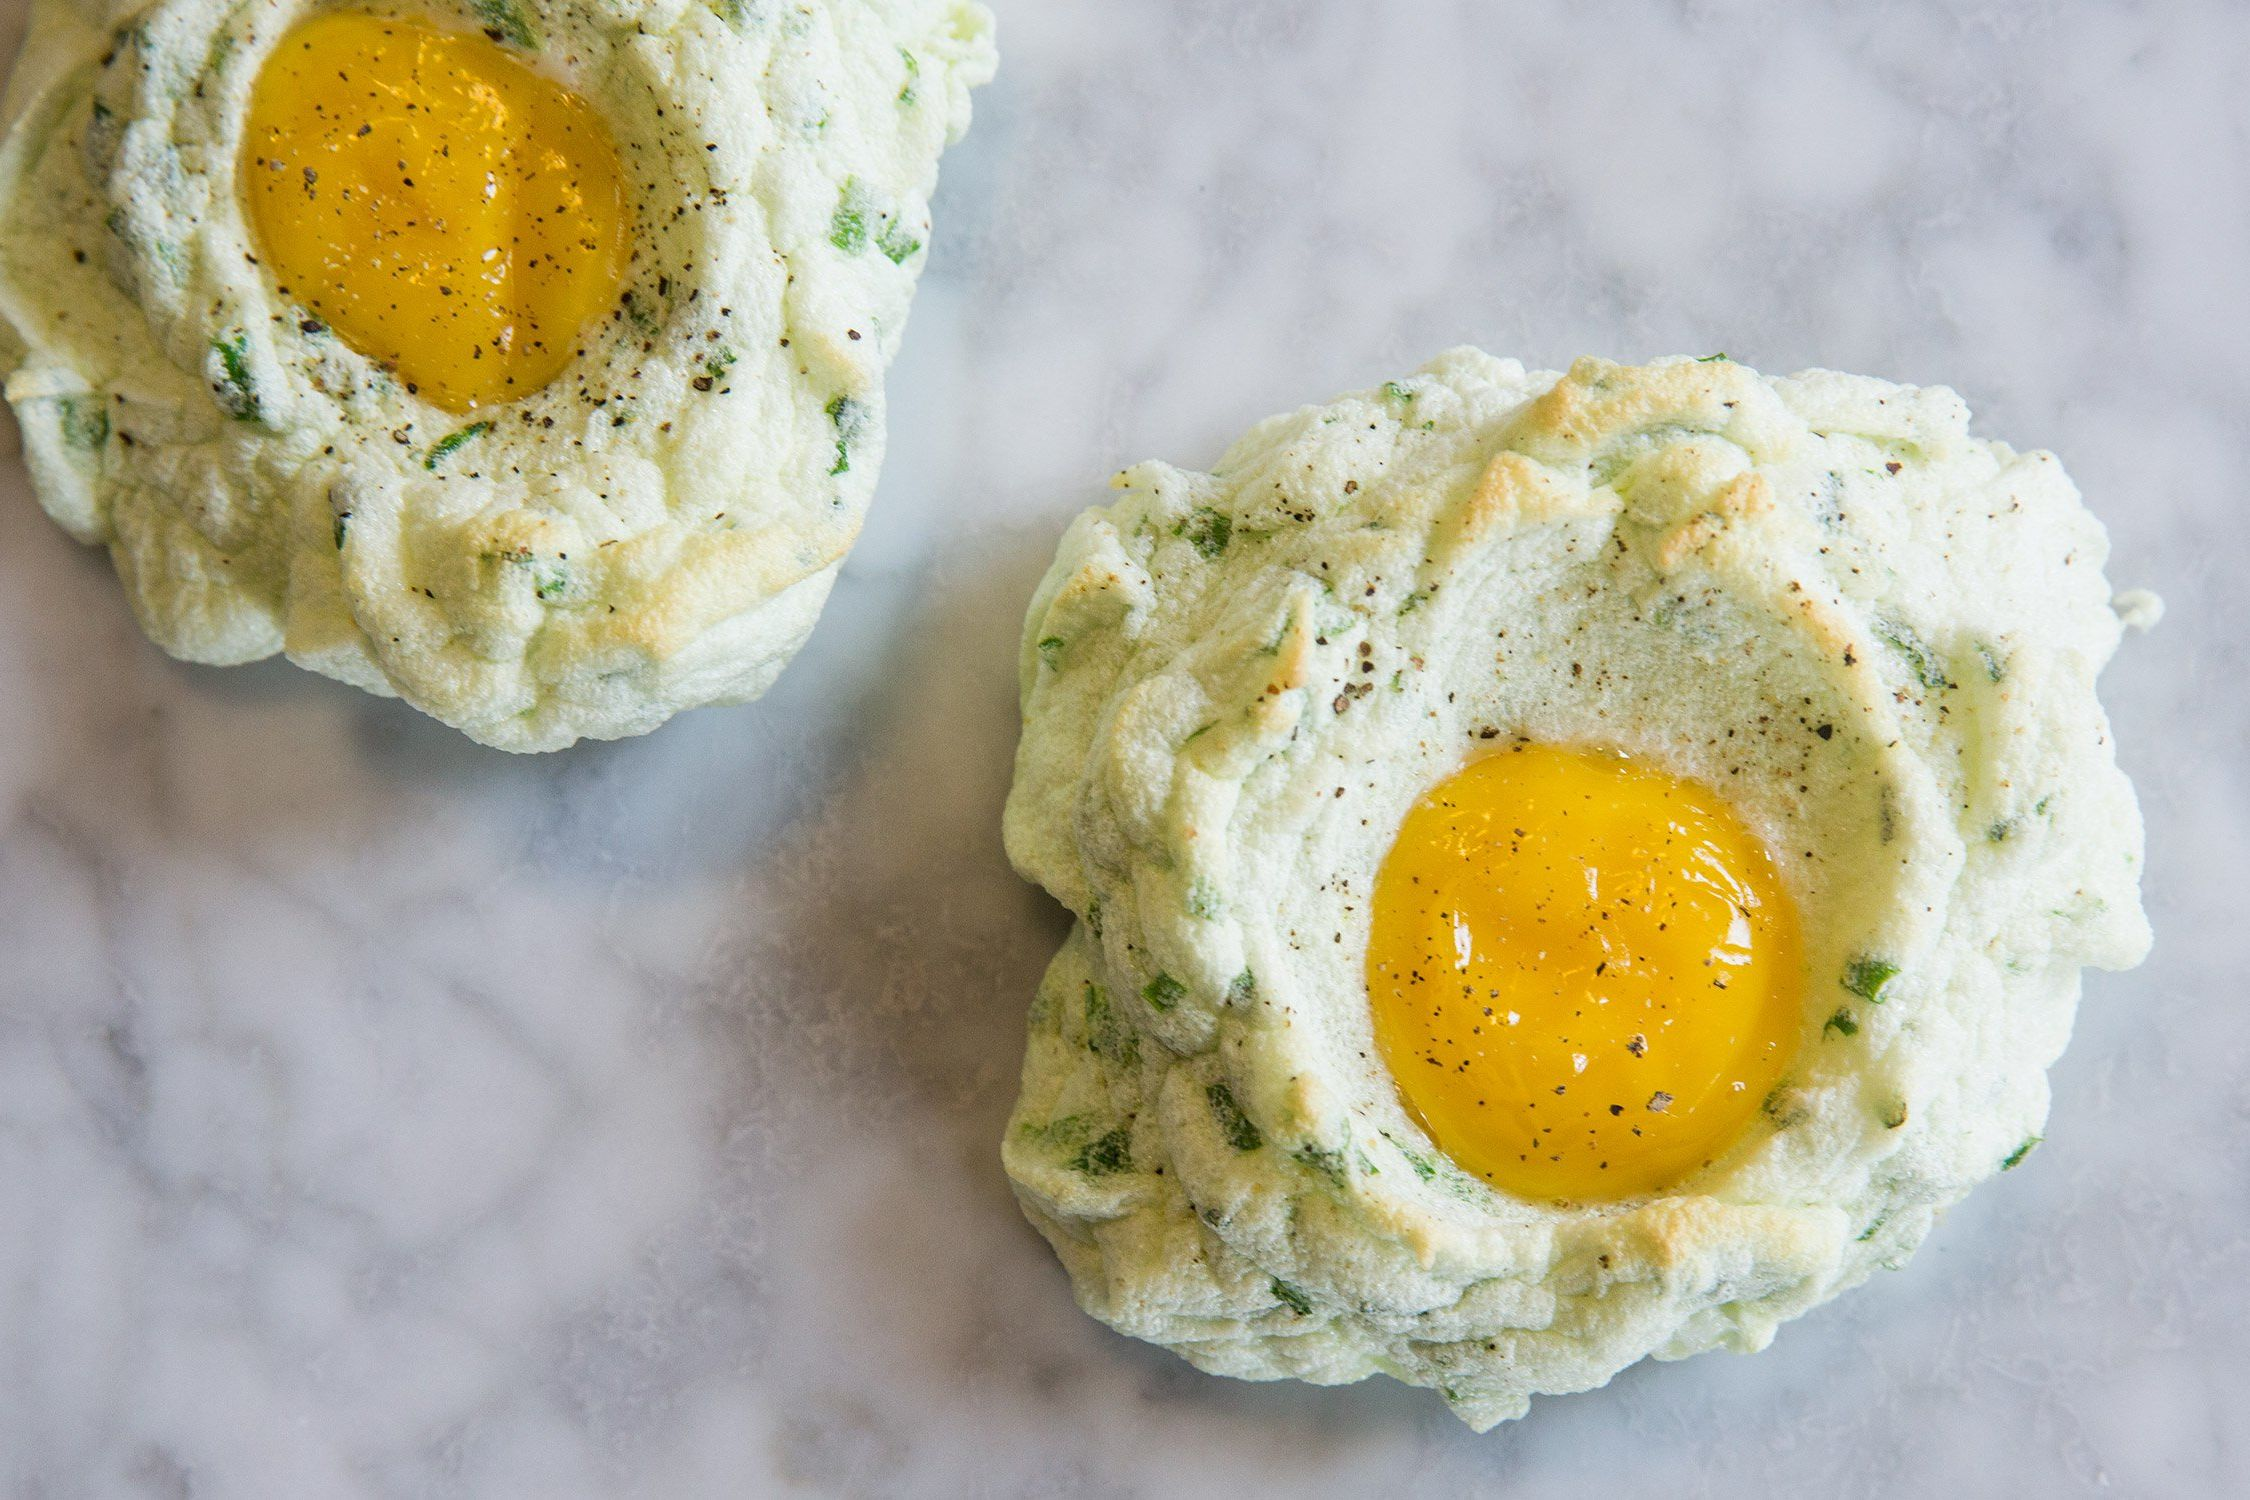 The Latest Breakfast Instagram Craze is This Unexpected Take on Eggs